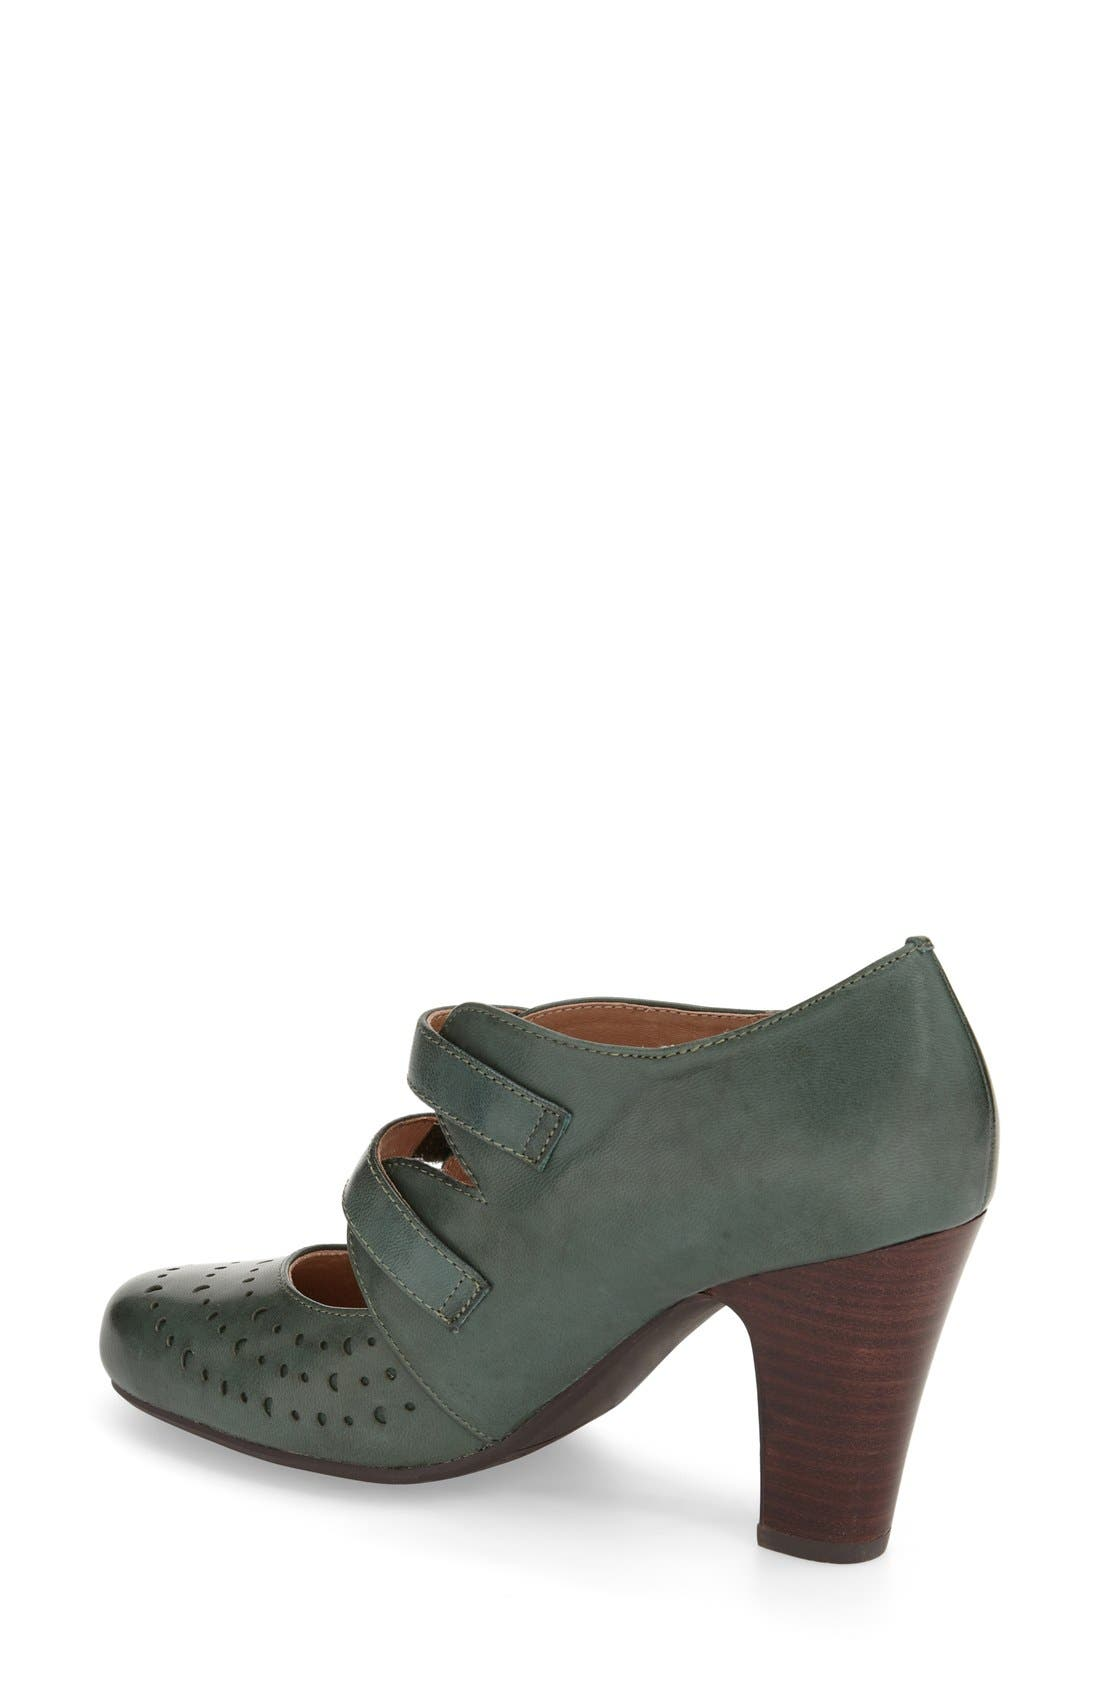 Alternate Image 2  - Miz Mooz 'Judy' Mary Jane Pump (Women)